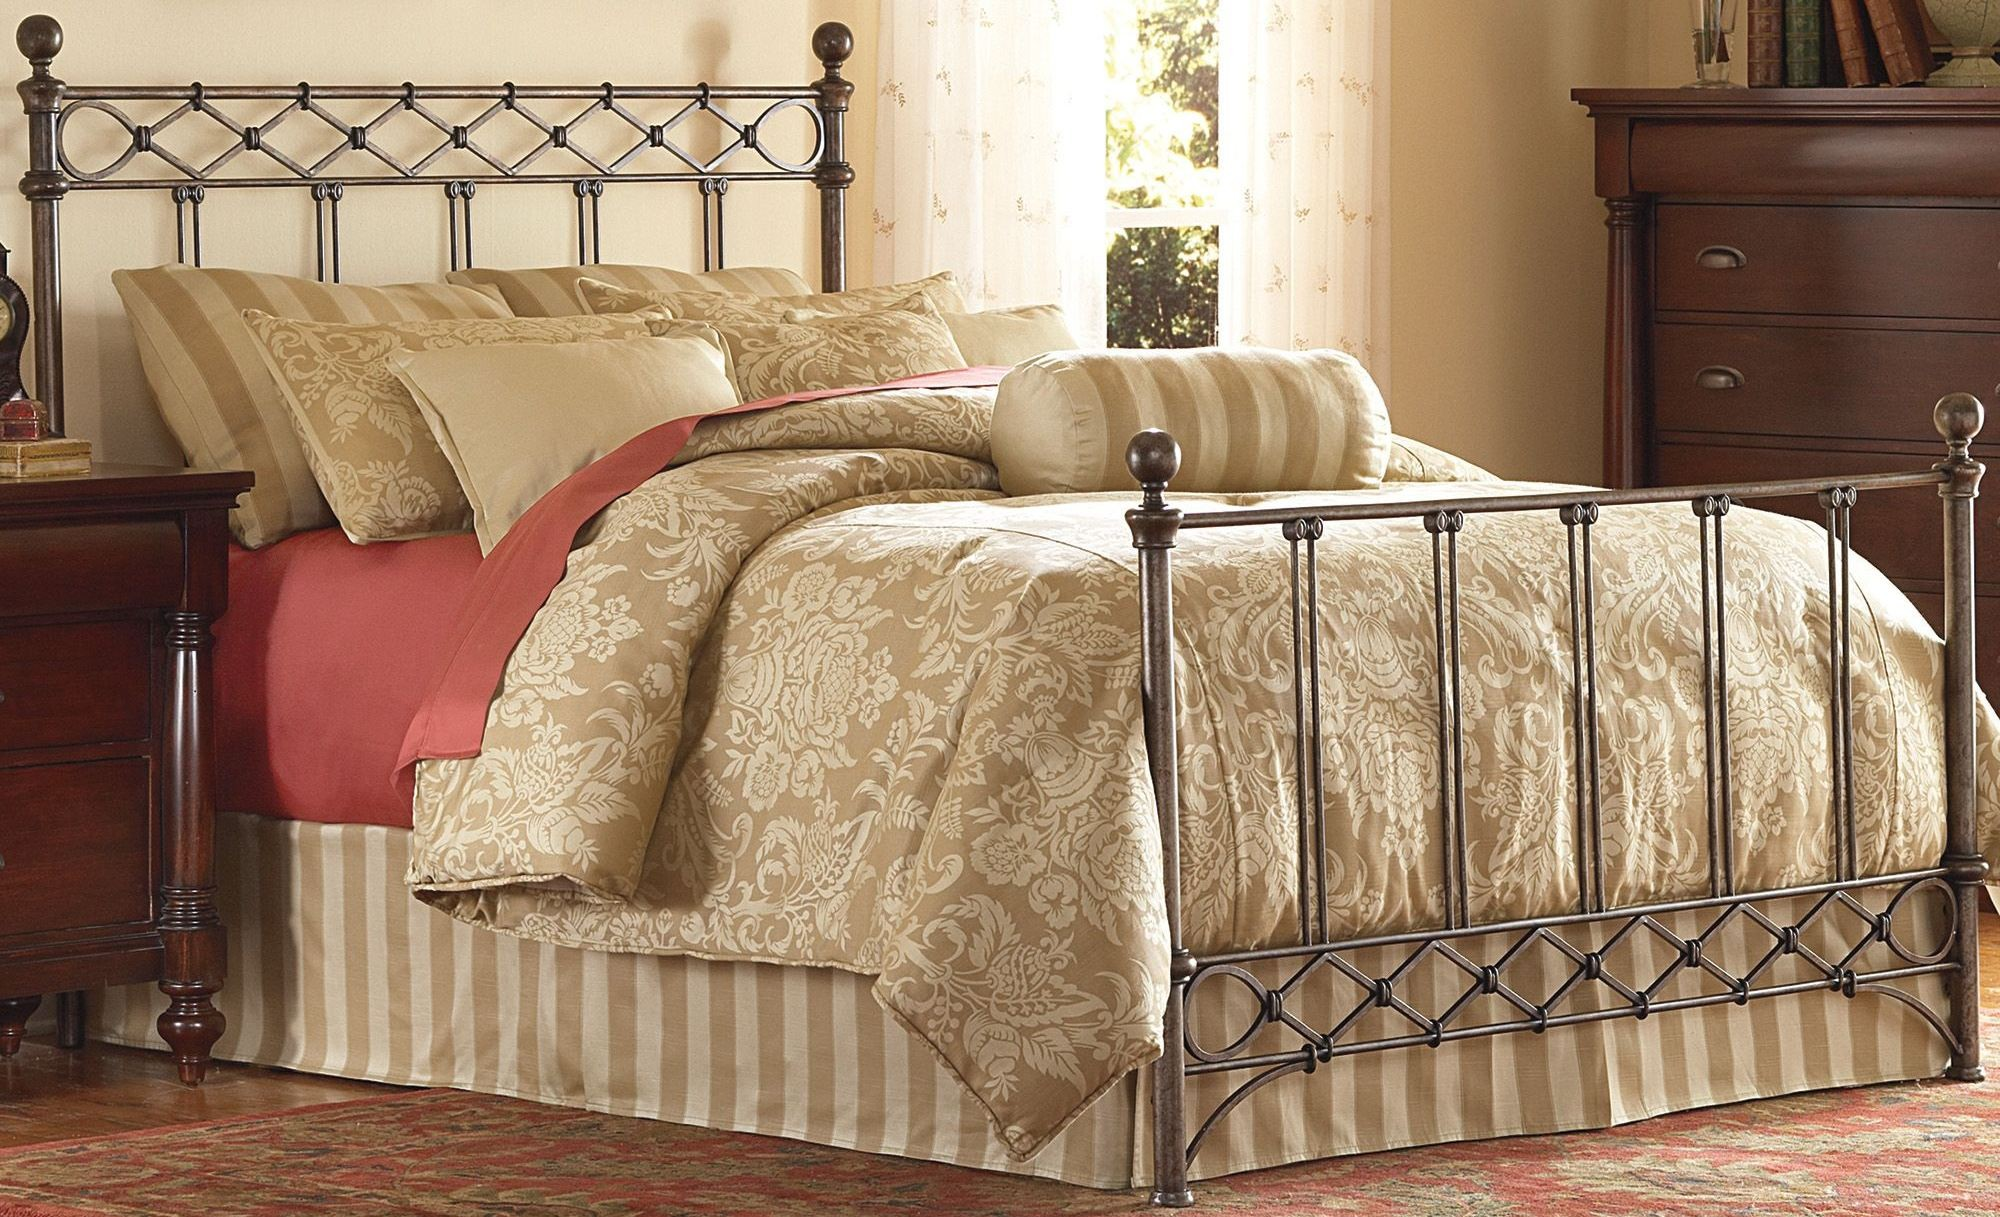 Argyle Copper Chrome Queen Ornamental Poster Bed, B11285